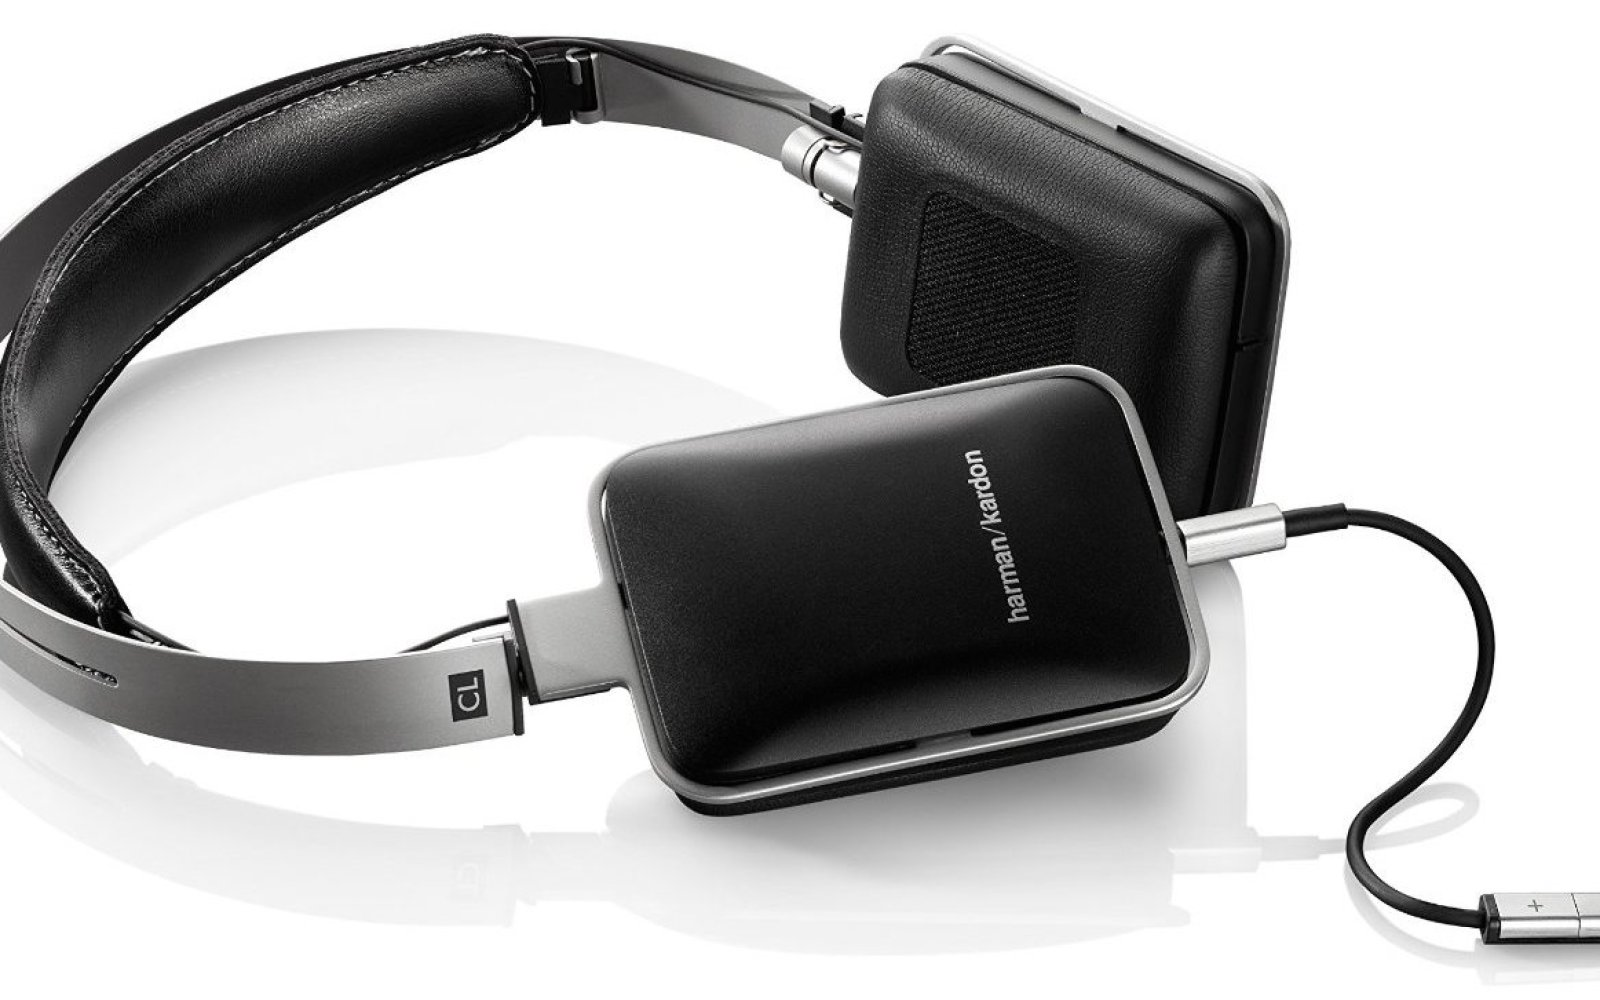 Harman Kardon CL Precision On-Ear Headphones w/ in-line remote & mic (refurb) $49 shipped (orig. $250), more